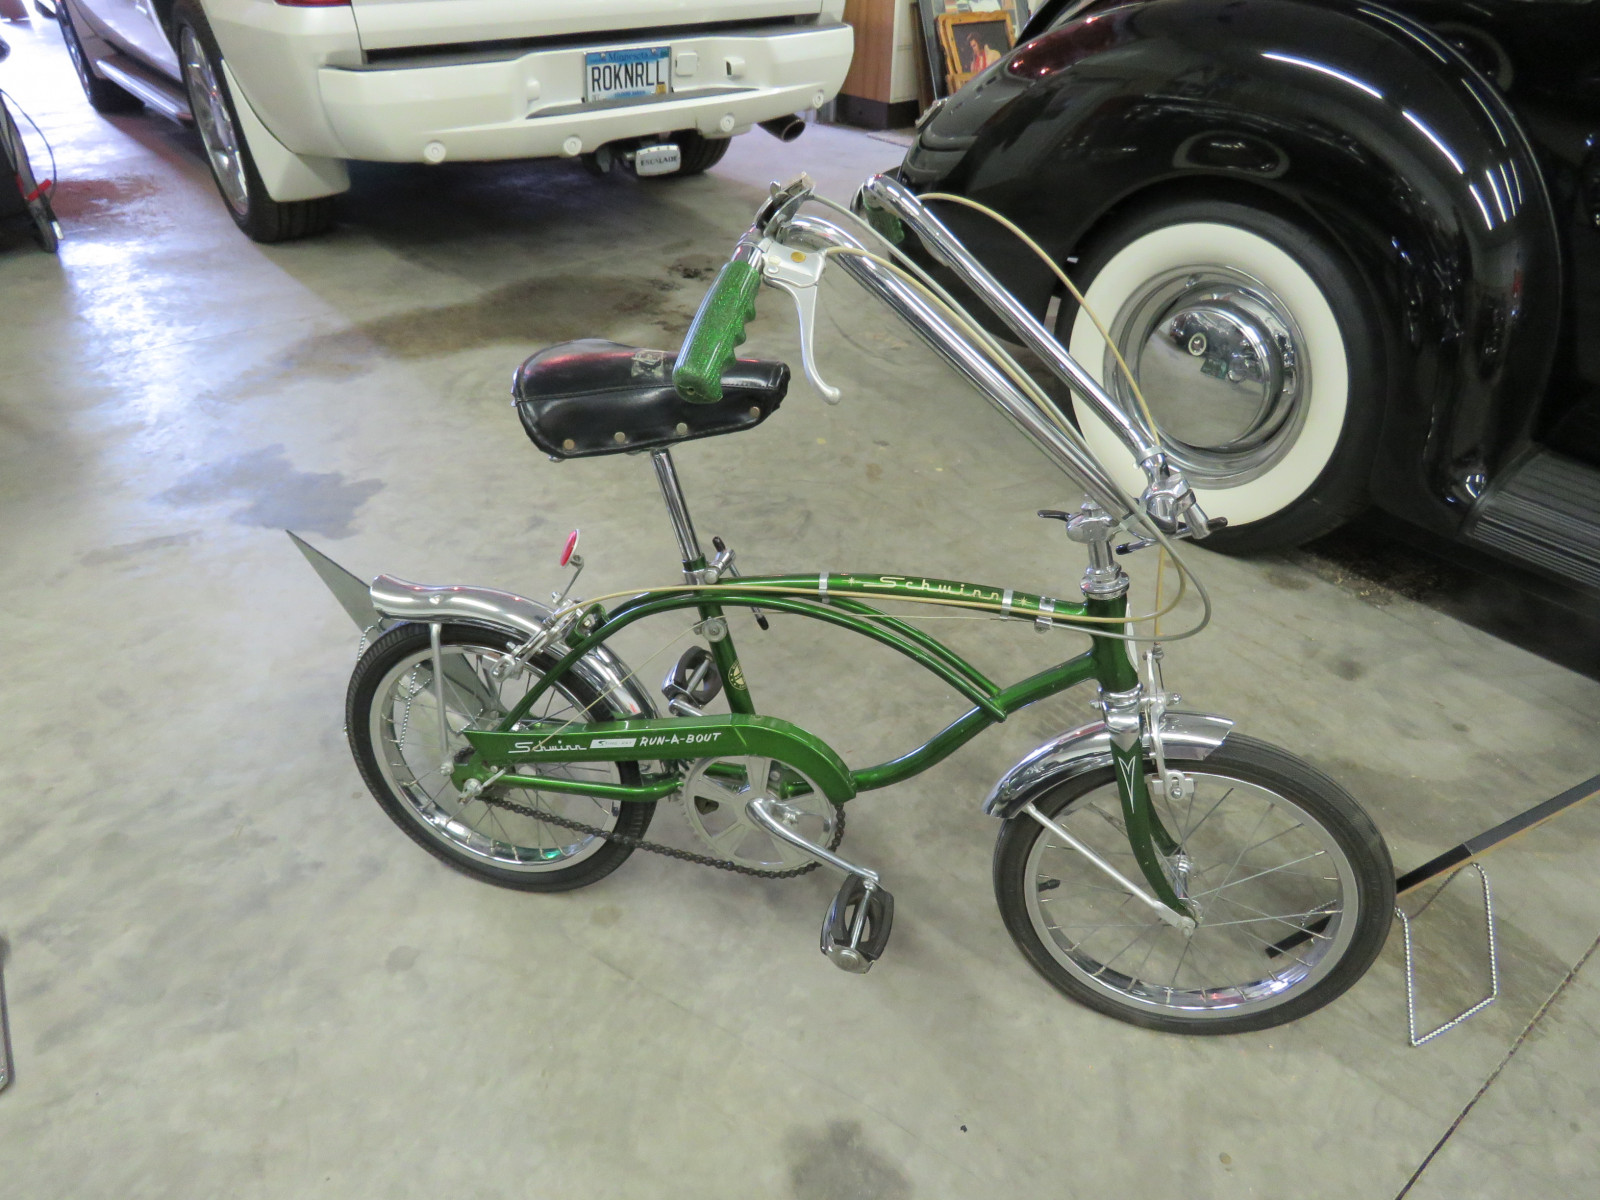 1968 Schwinn Sting Ray Bicycle - Image 4